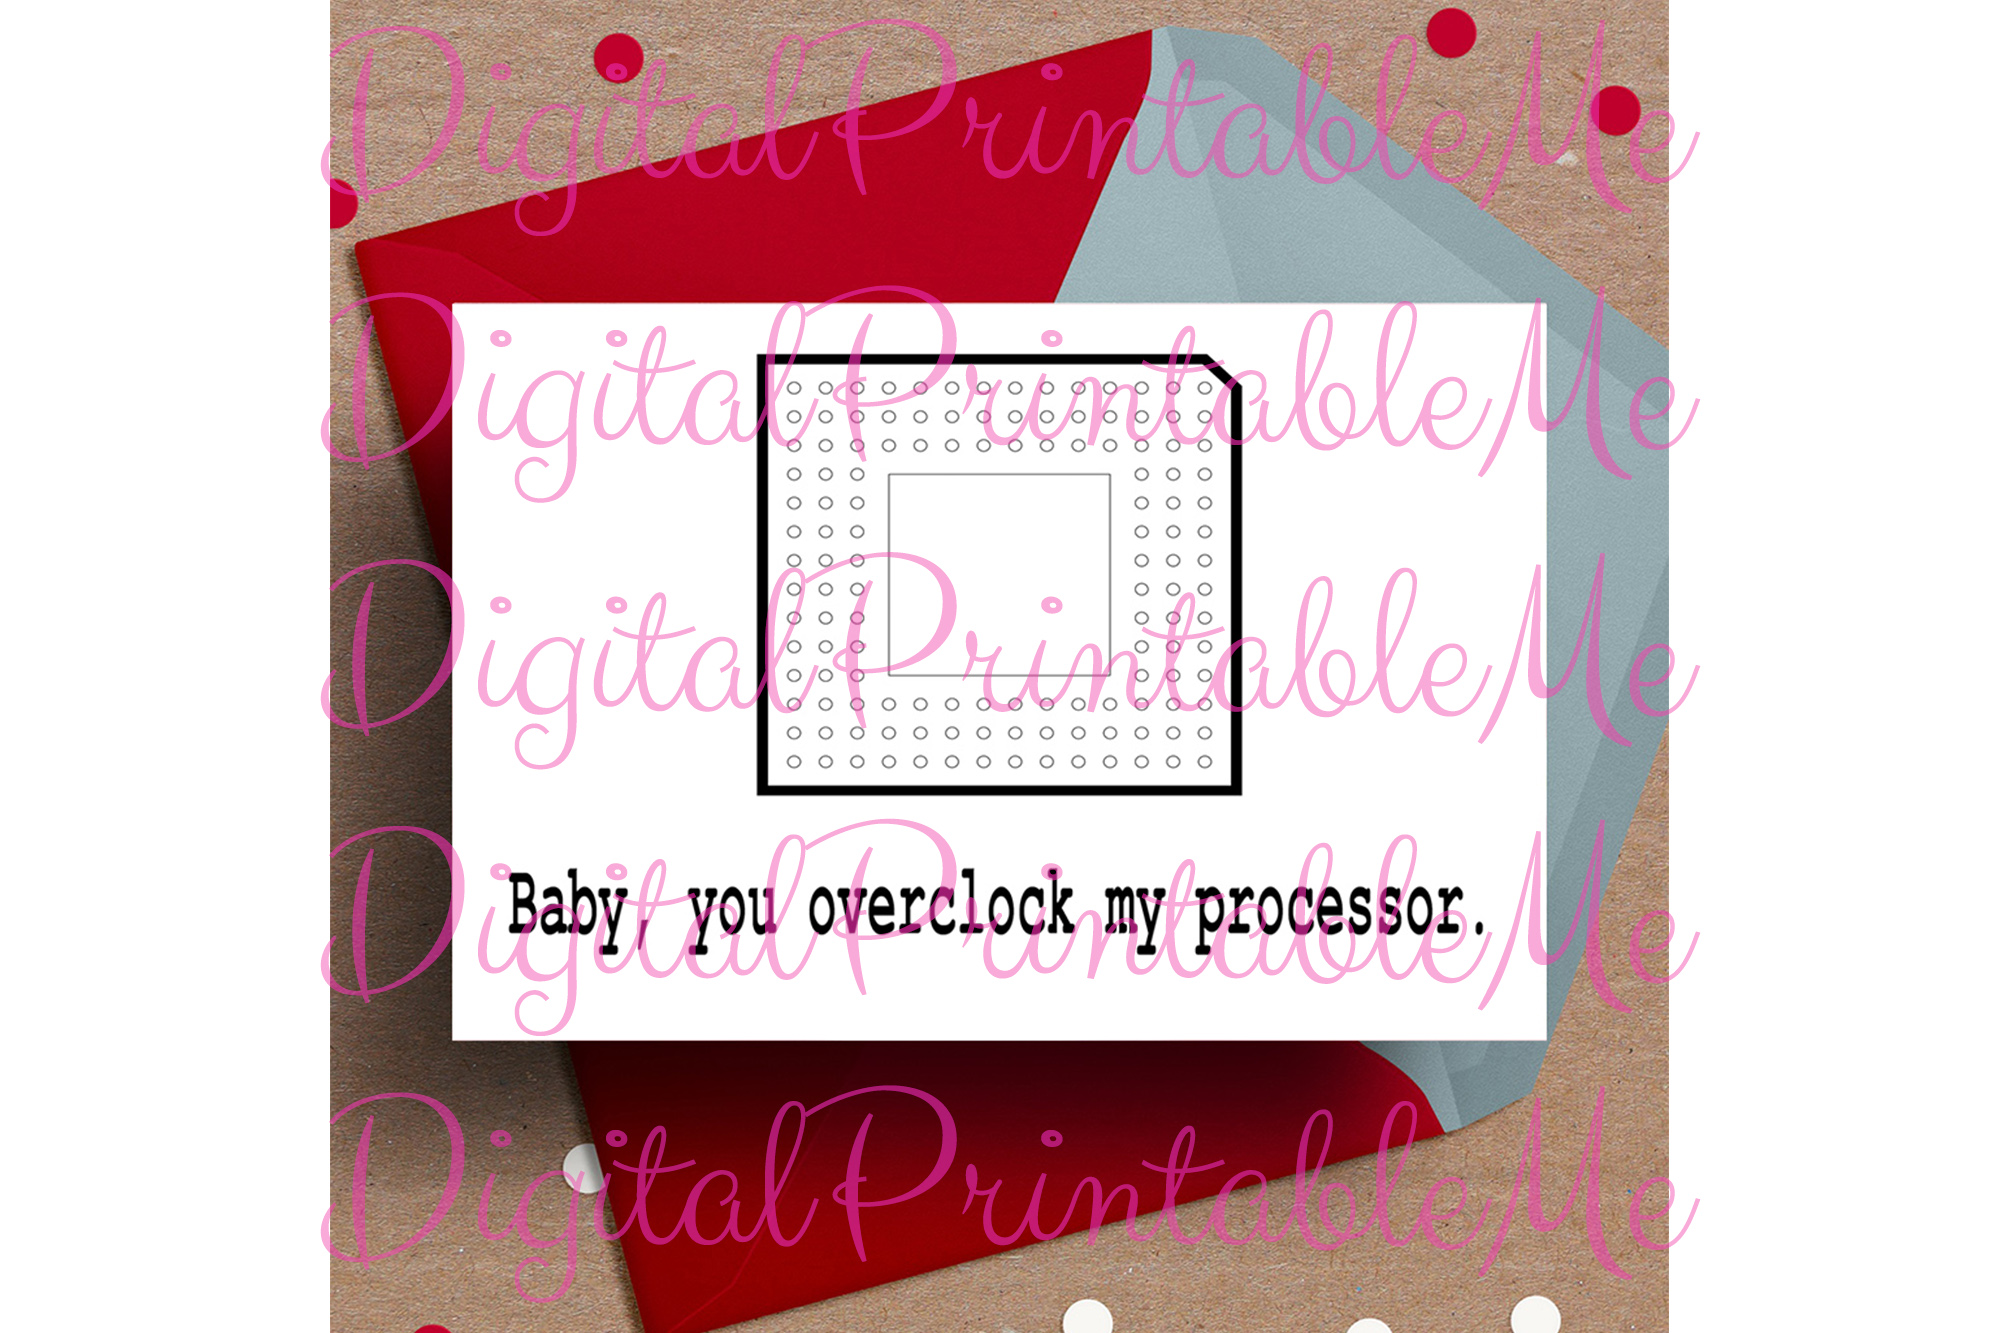 photo relating to Funny Printable Valentines titled Printable Valentines working day card Little one on your own overclock my